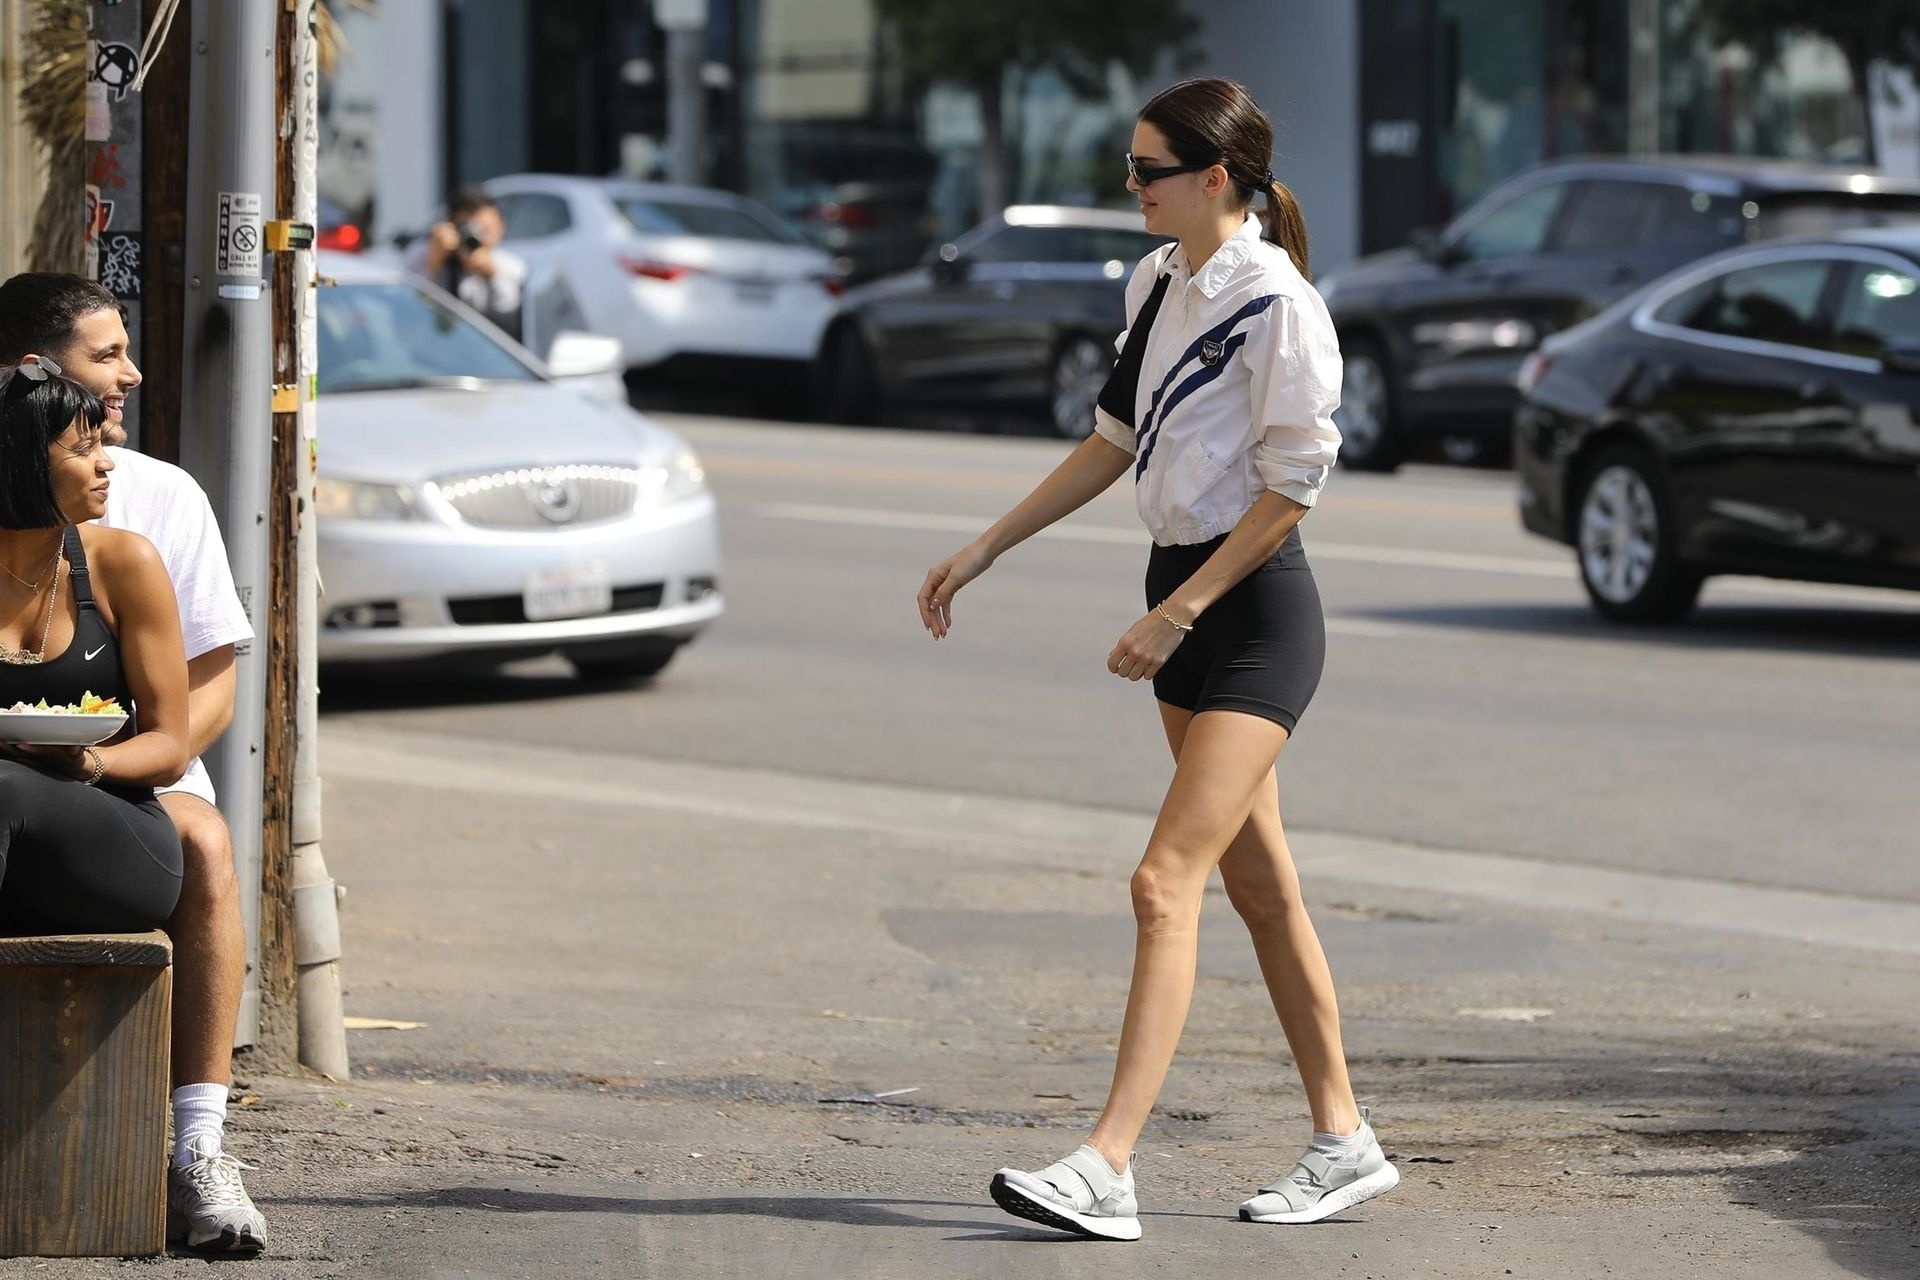 Kendall Jenner Showcases Her Cellulite Legs In Tiny Spandex Shorts In Los Angeles 0014